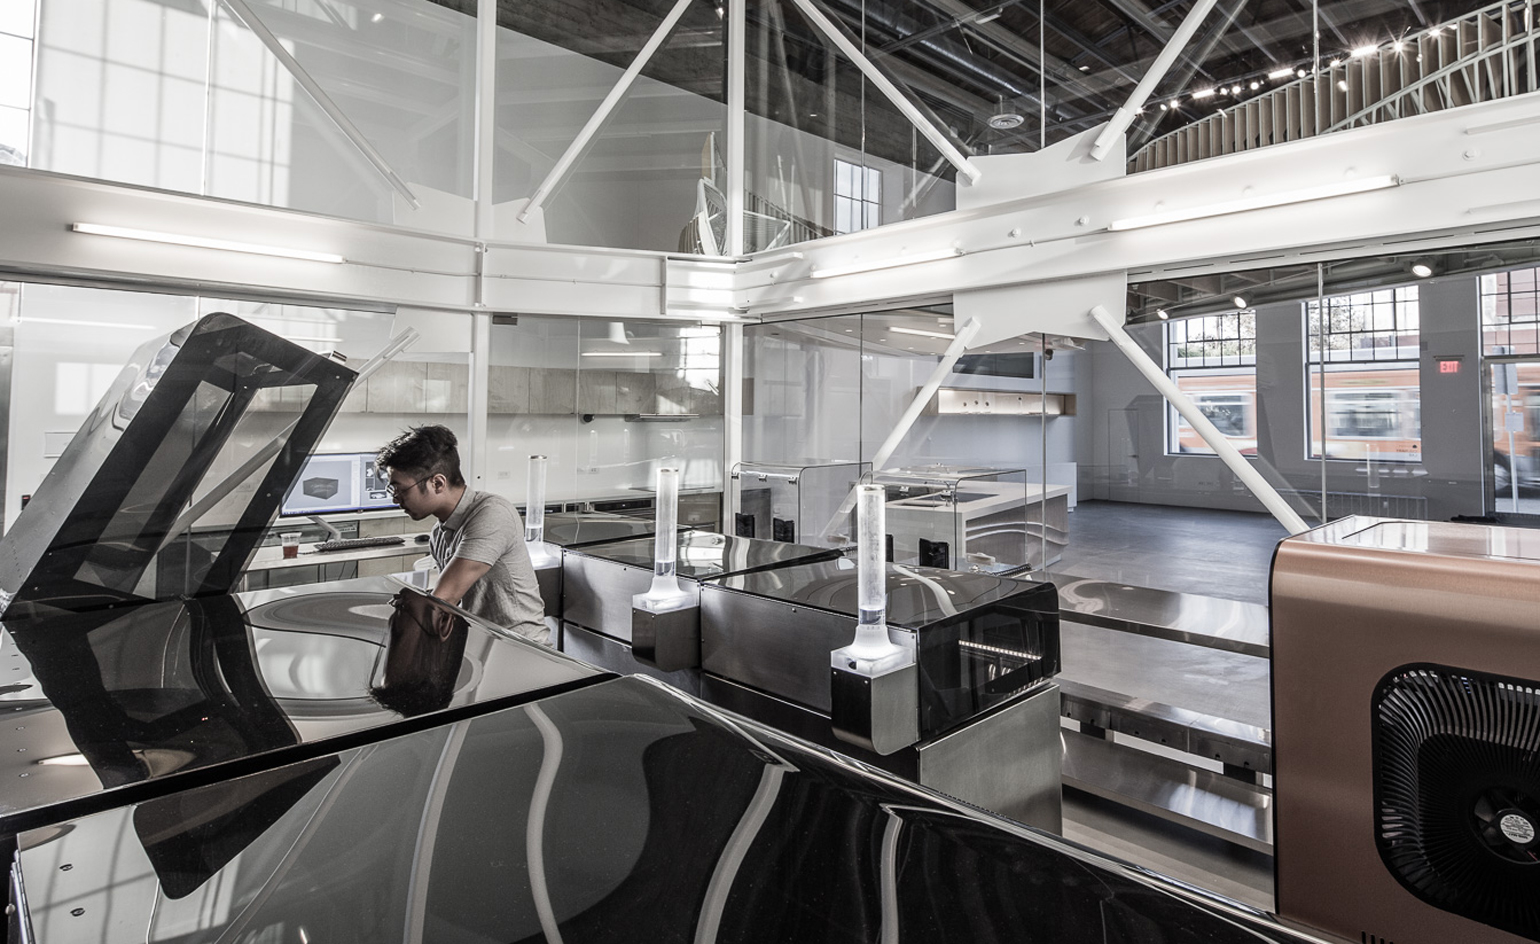 Oyler wu collaborative create 3d food lab wallpaper for Lab architects